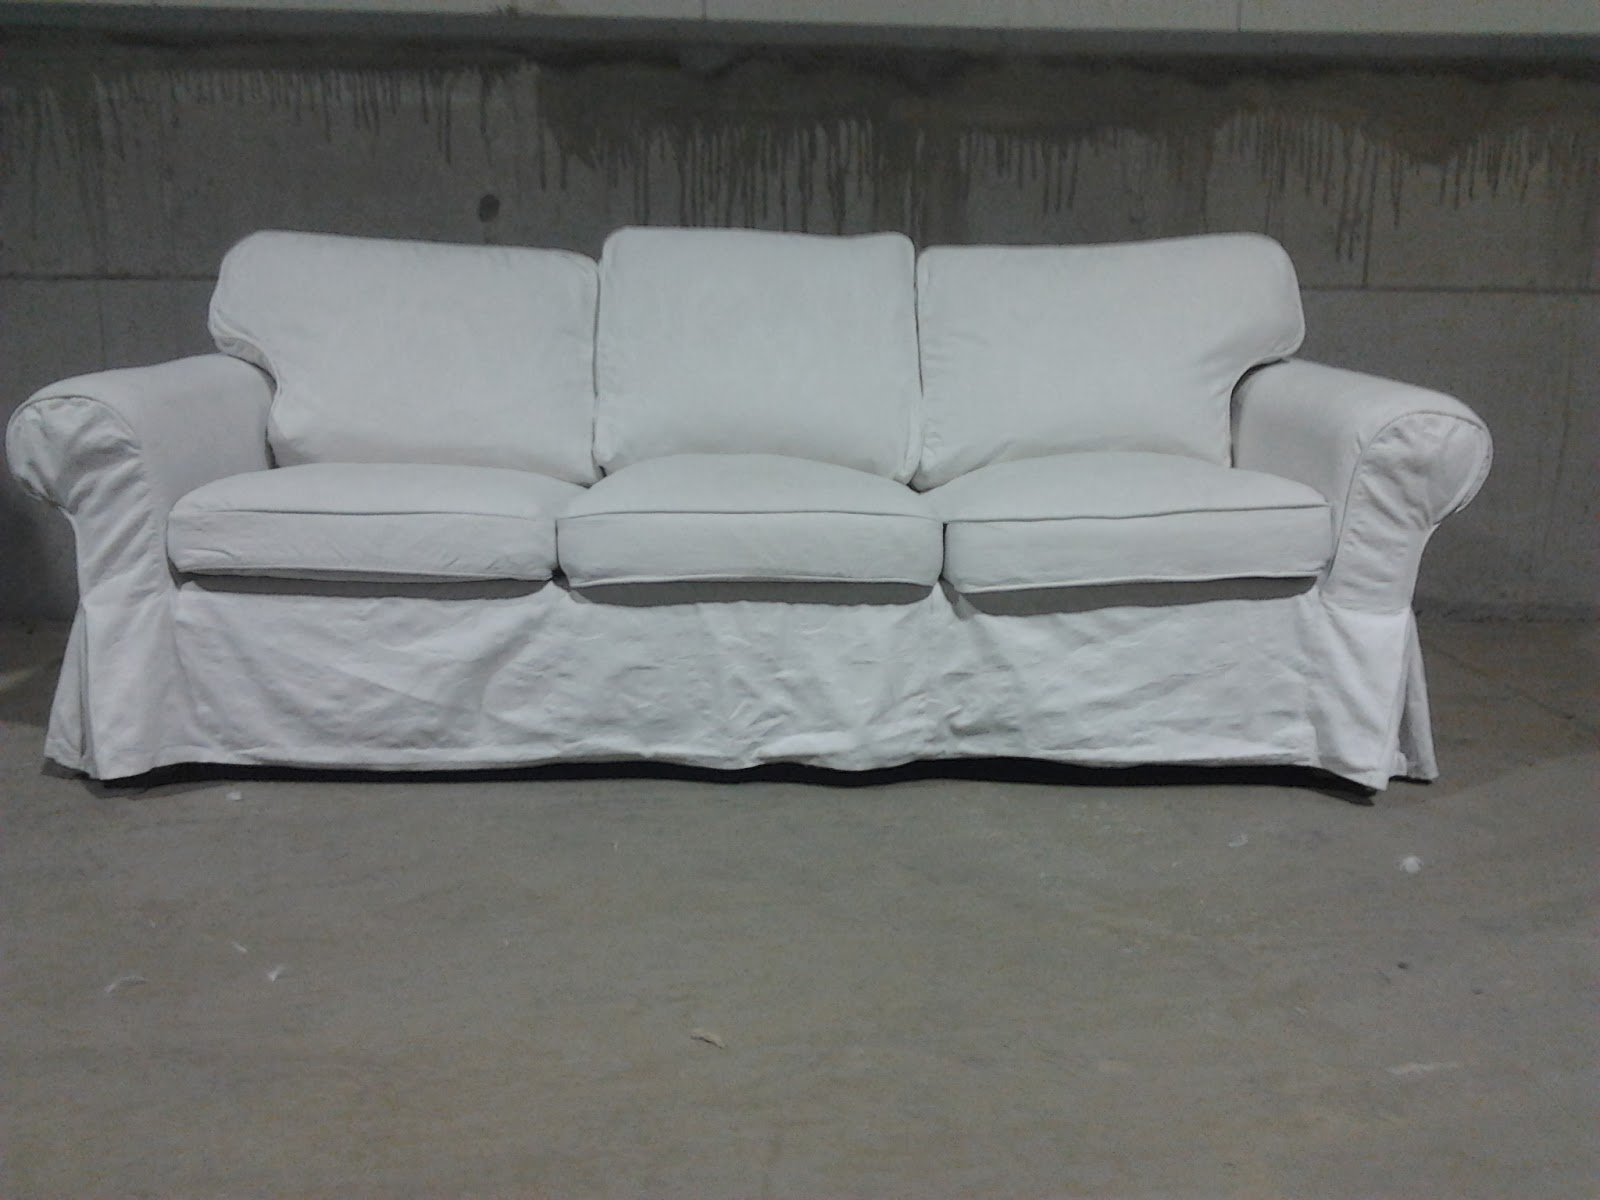 bric et brol canap blanc ektorp 3 places tr s style flamand shabby chic. Black Bedroom Furniture Sets. Home Design Ideas